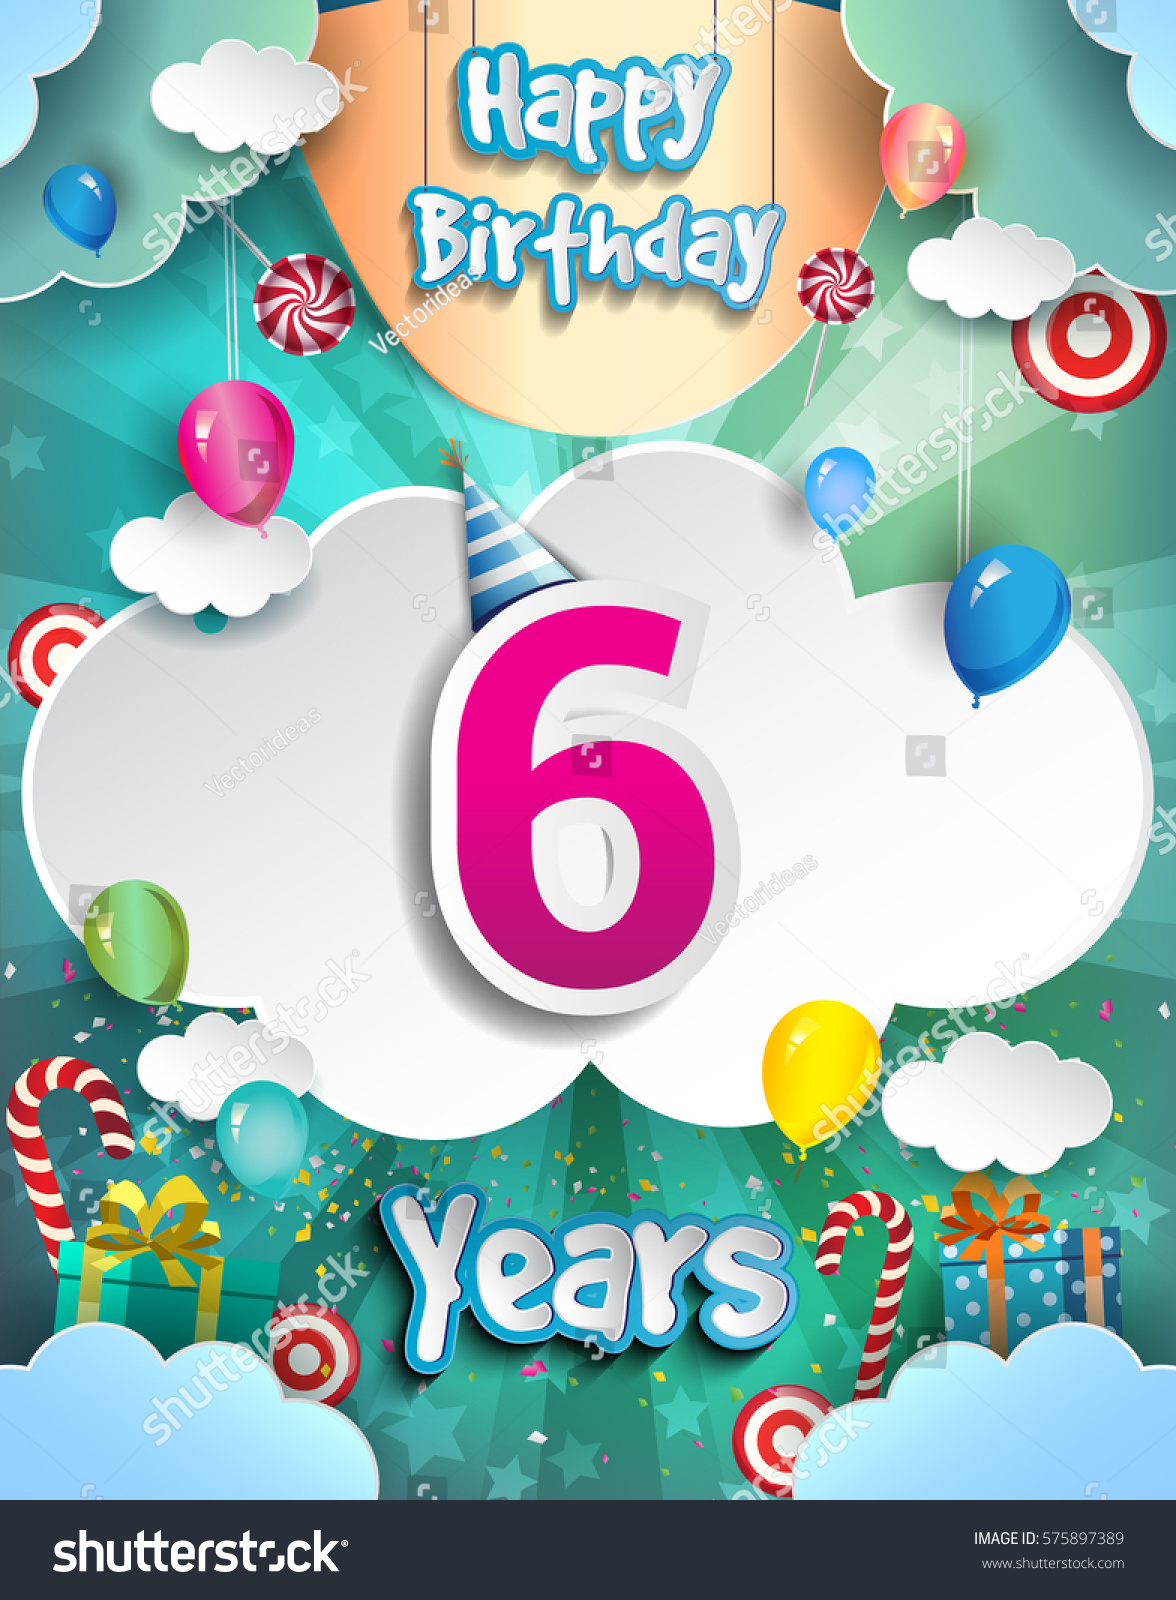 6 Years Birthday Design For Greeting Cards And Poster With Clouds Gift Box